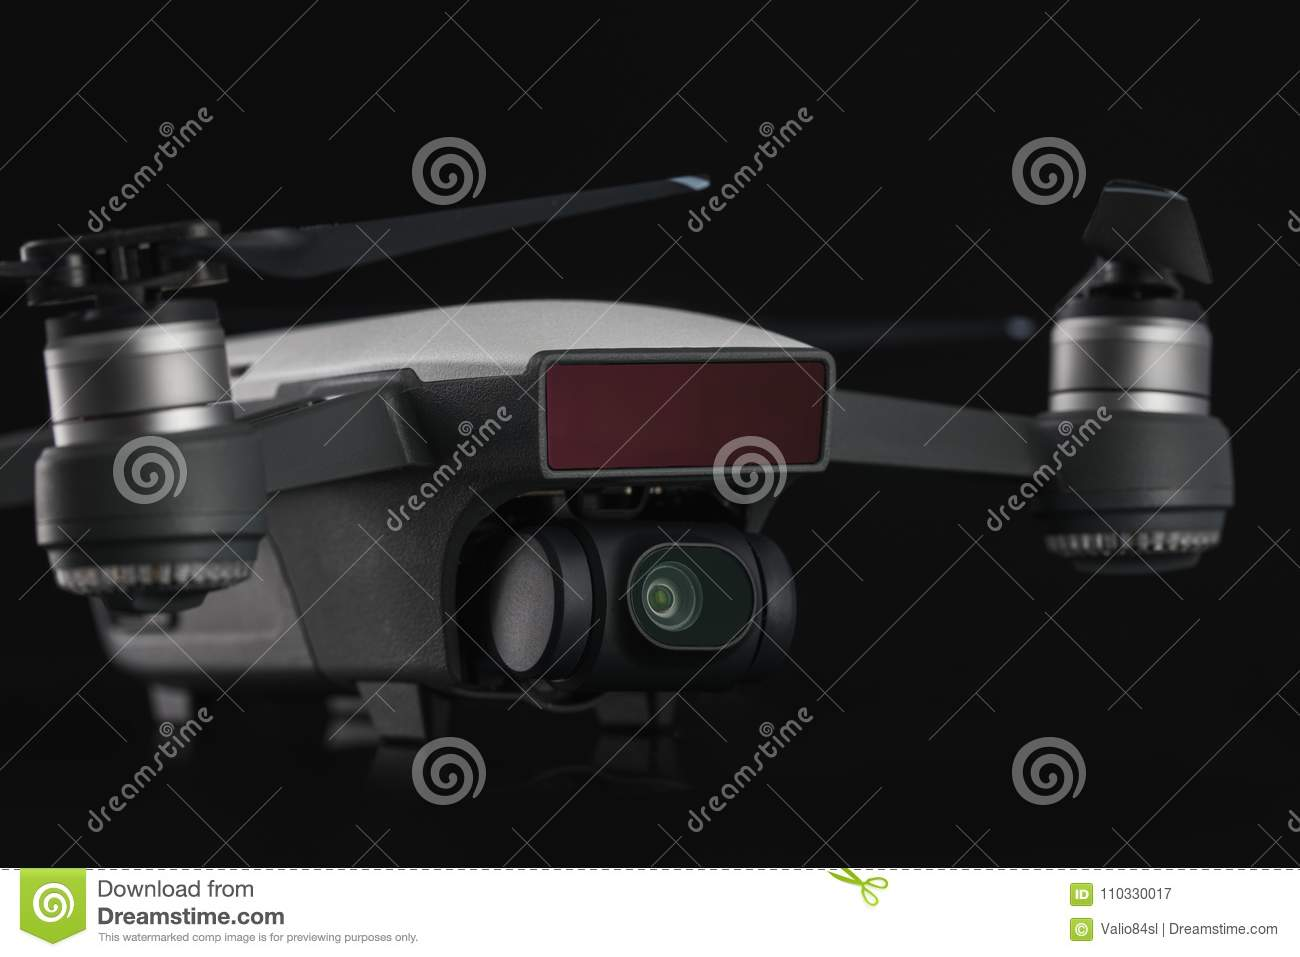 Dji Spark isolated on black